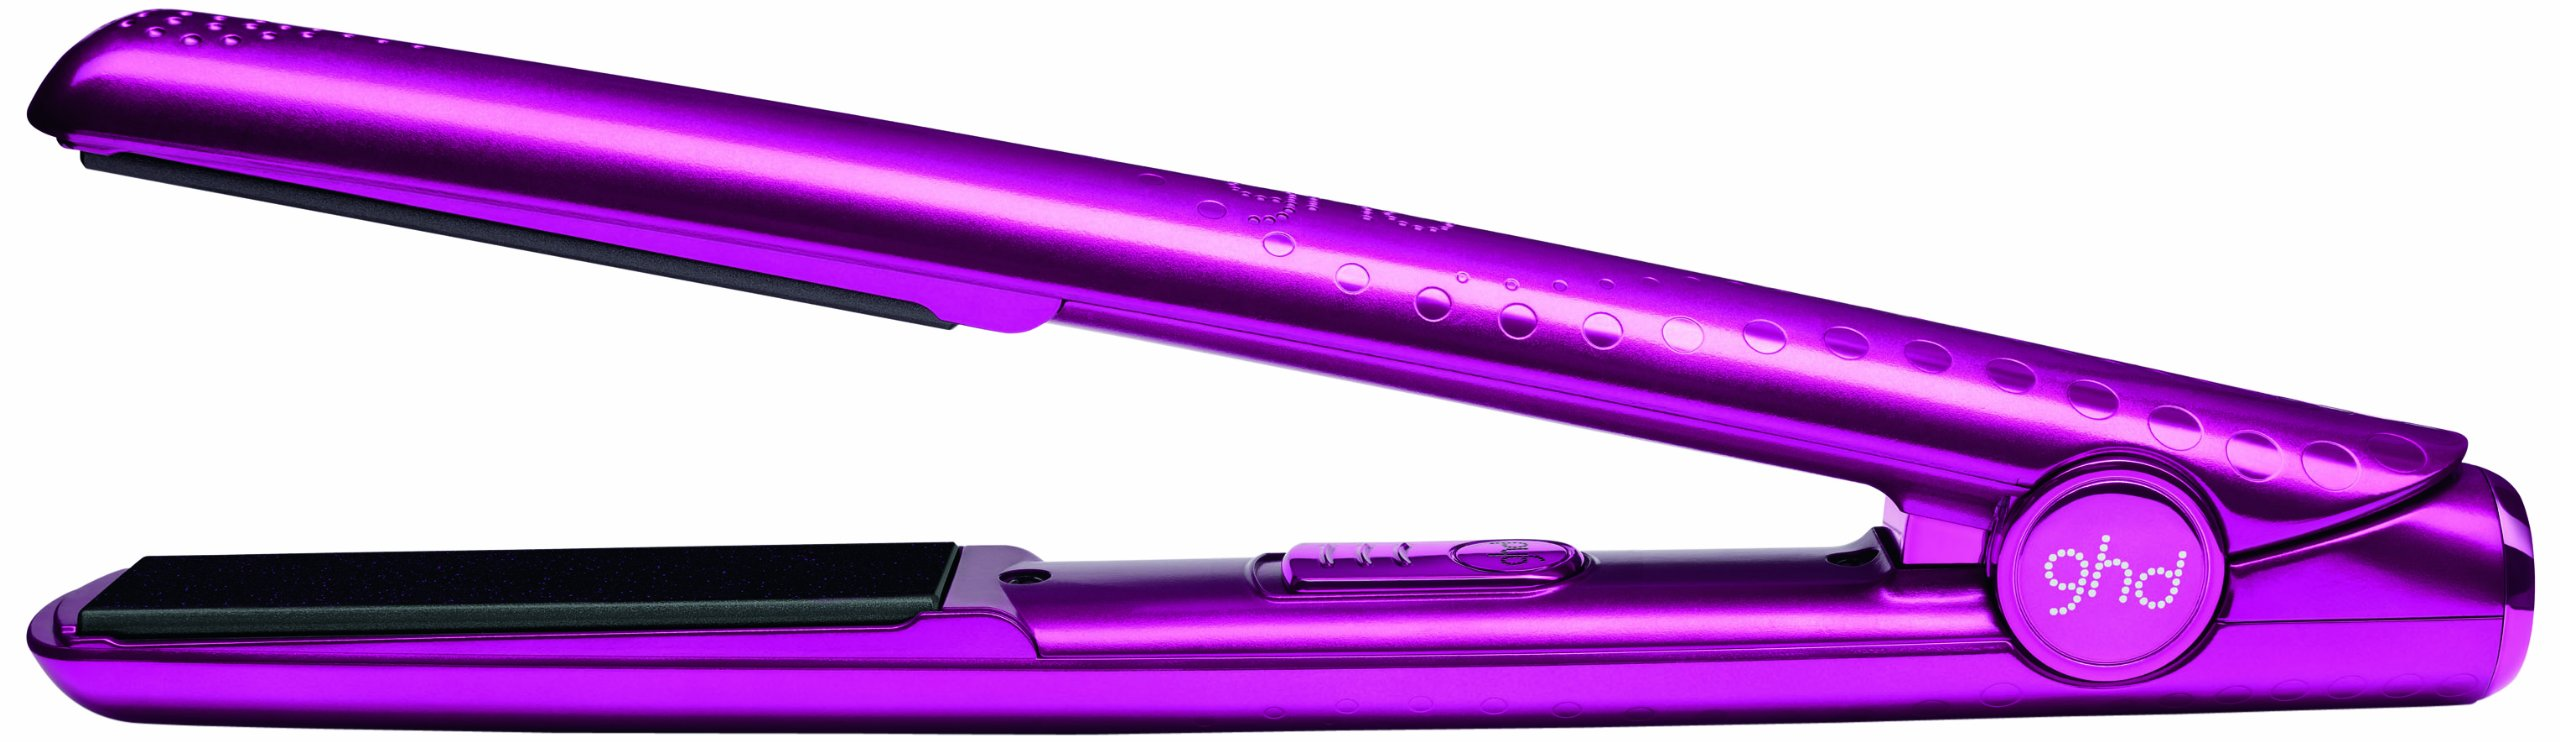 Ghd Jewel Collection Professional Styler, Pink Diamond, 1 Inch